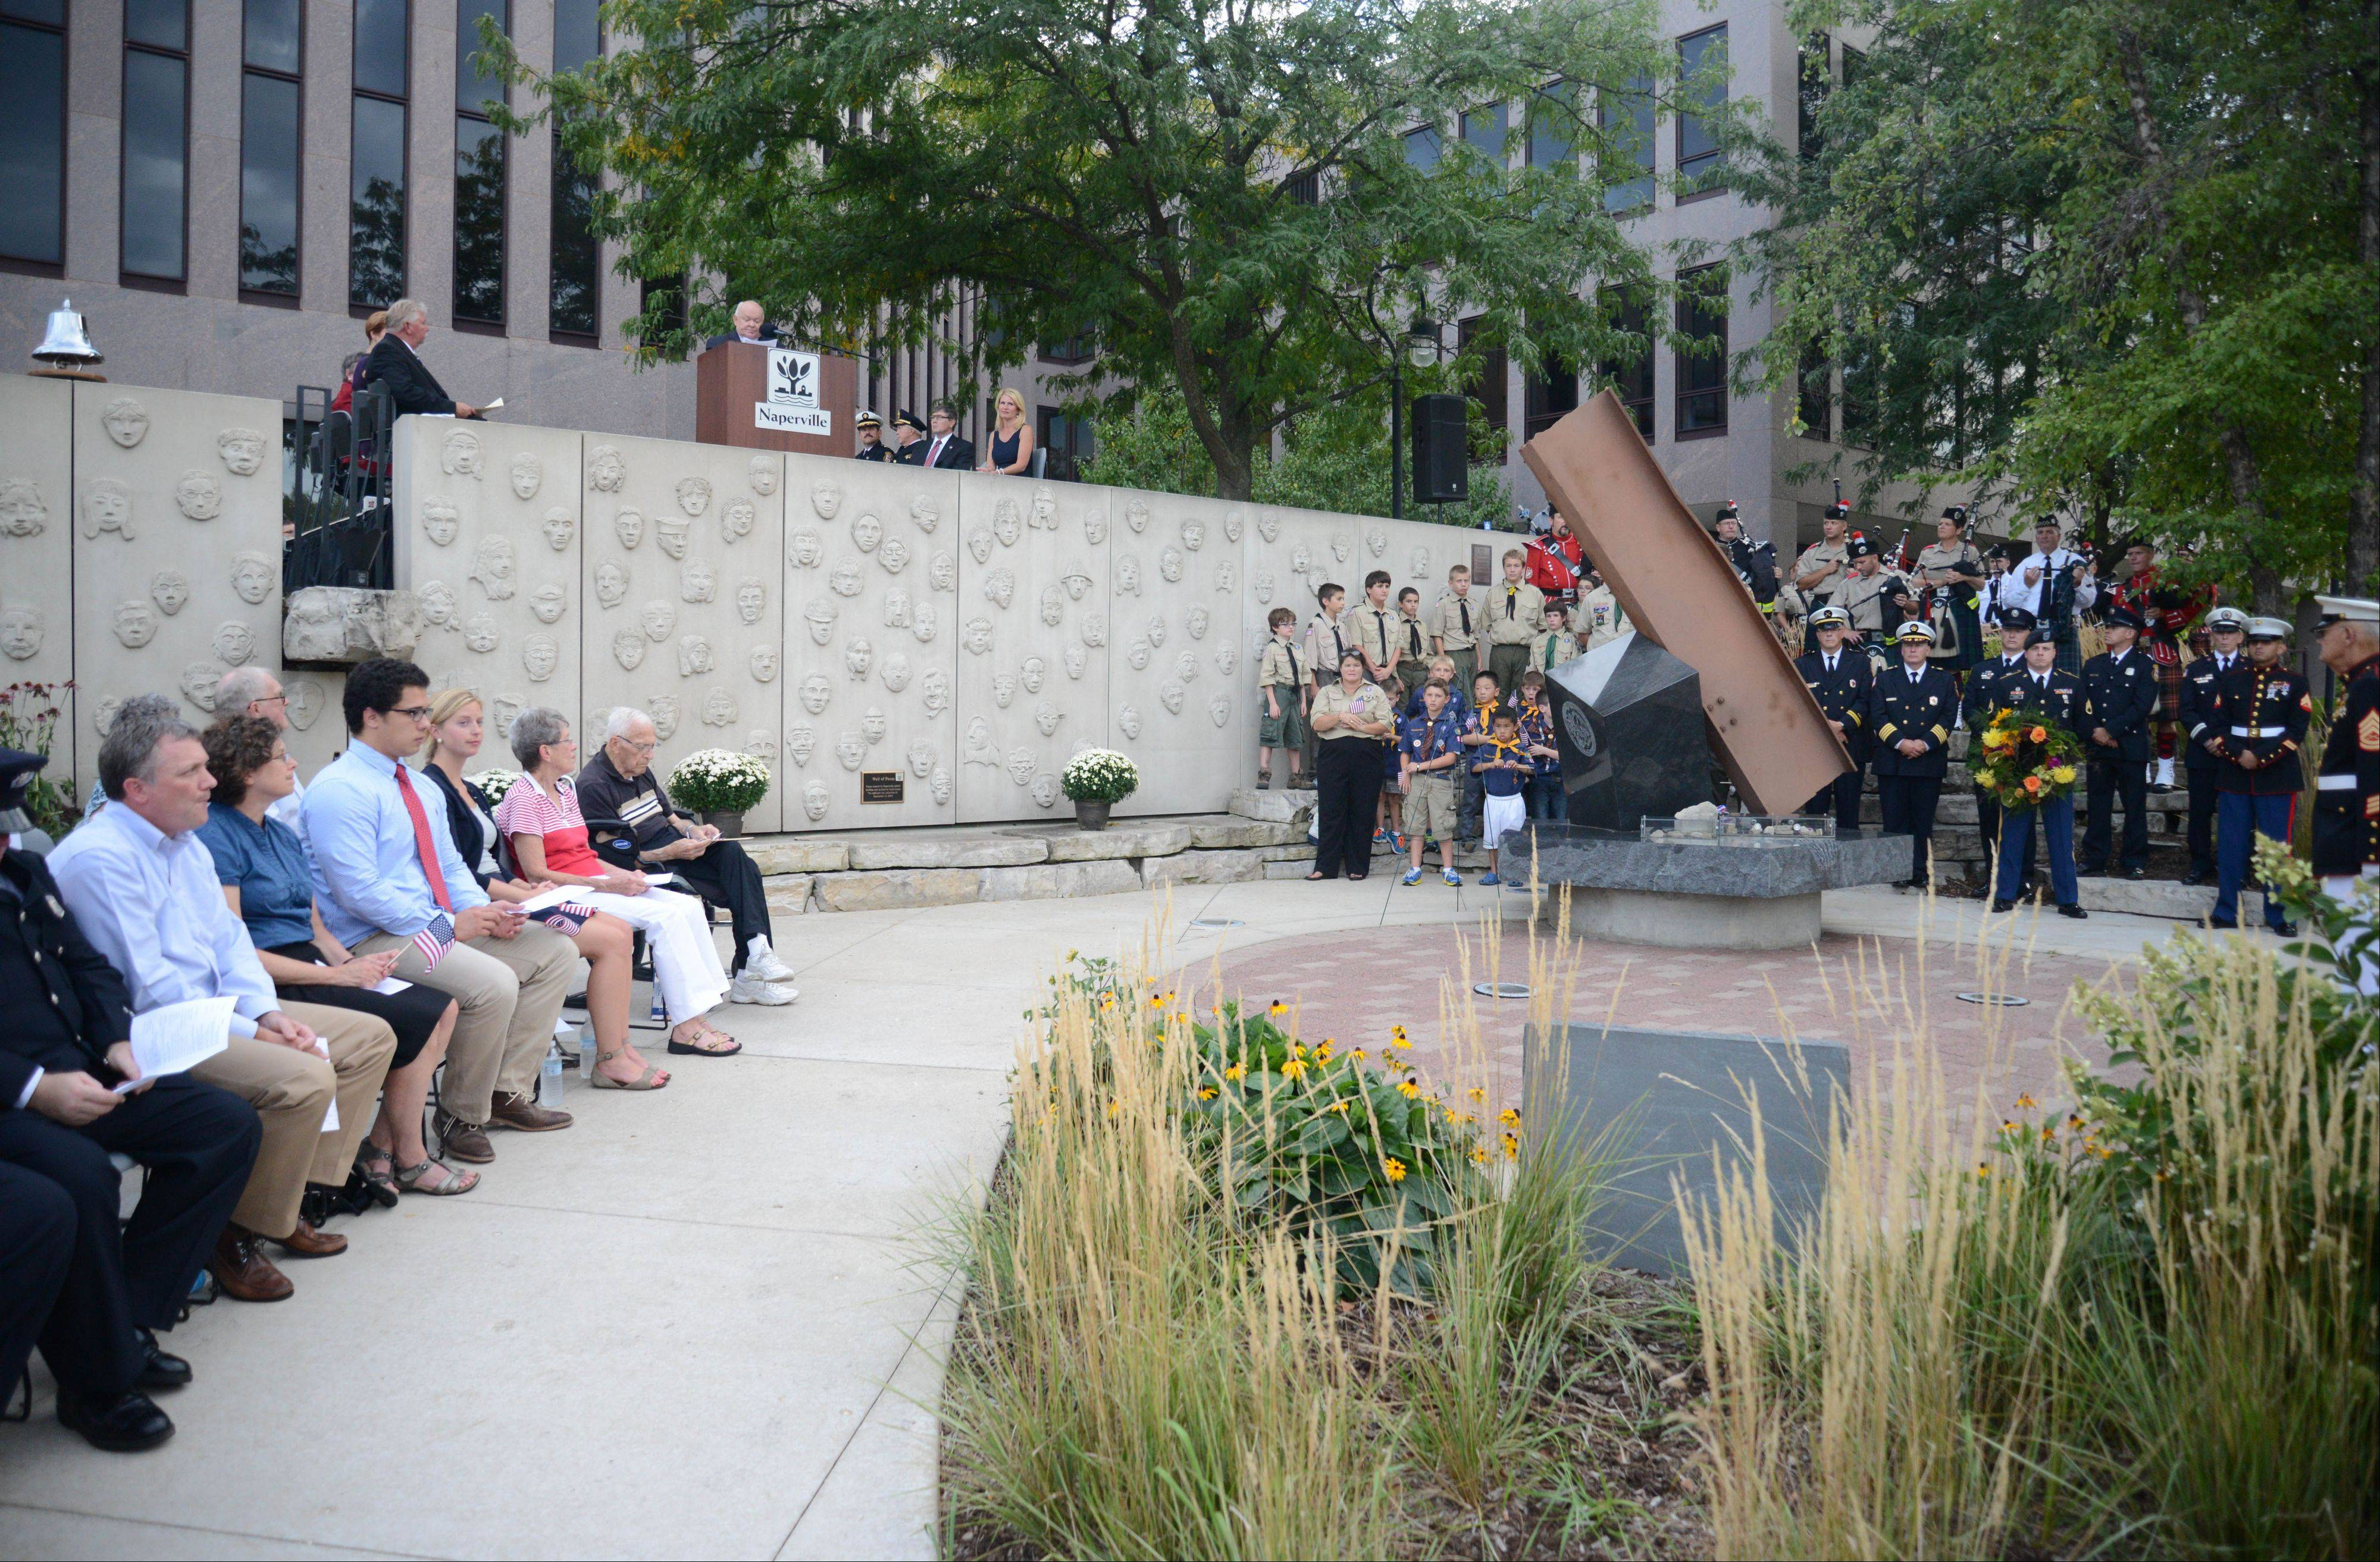 A crowd of a few hundred gathered on both sides of the DuPage River at the Cmdr. Dan Shanower Memorial in Naperville to mark the 12th anniversary of the Sept. 11 terrorist attacks and honor those who lost their lives that day.